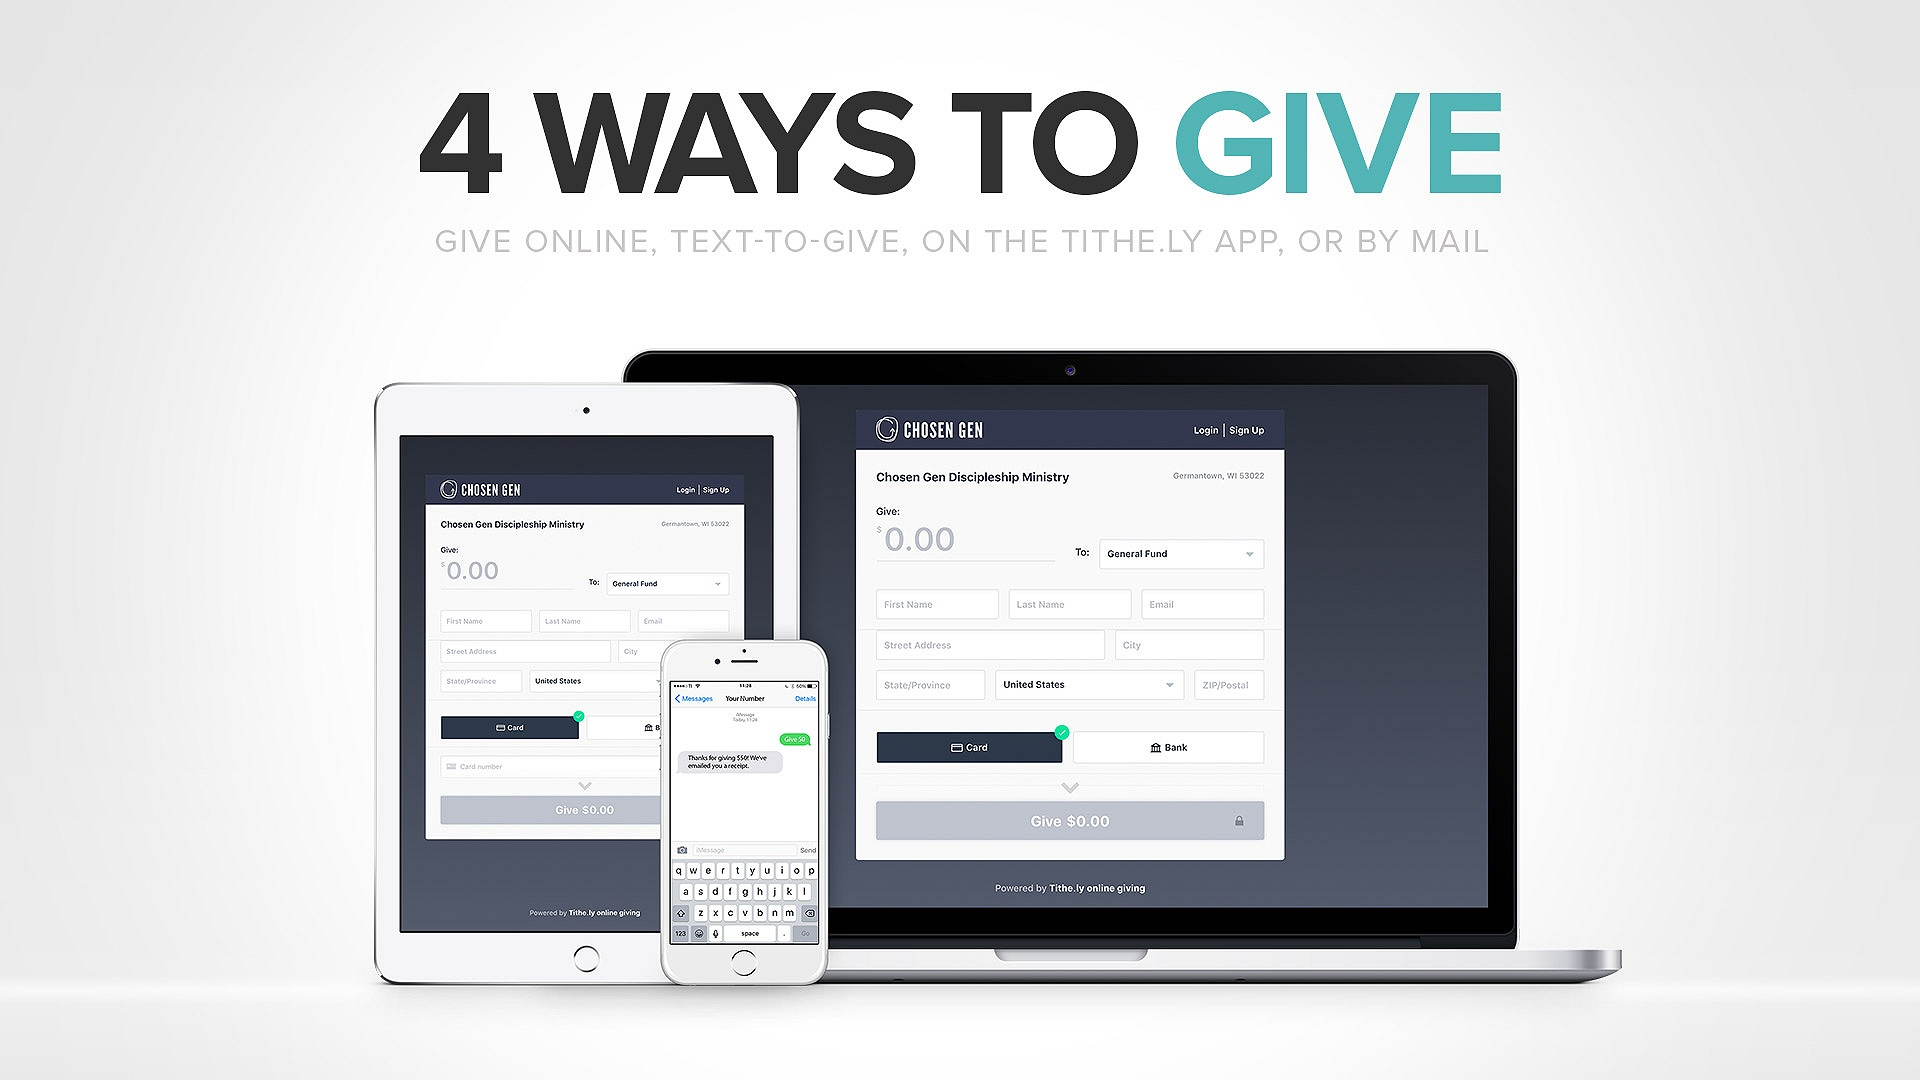 Questions about how to donate using text to give or the tithe.ly app?   View step-by-step instructions >